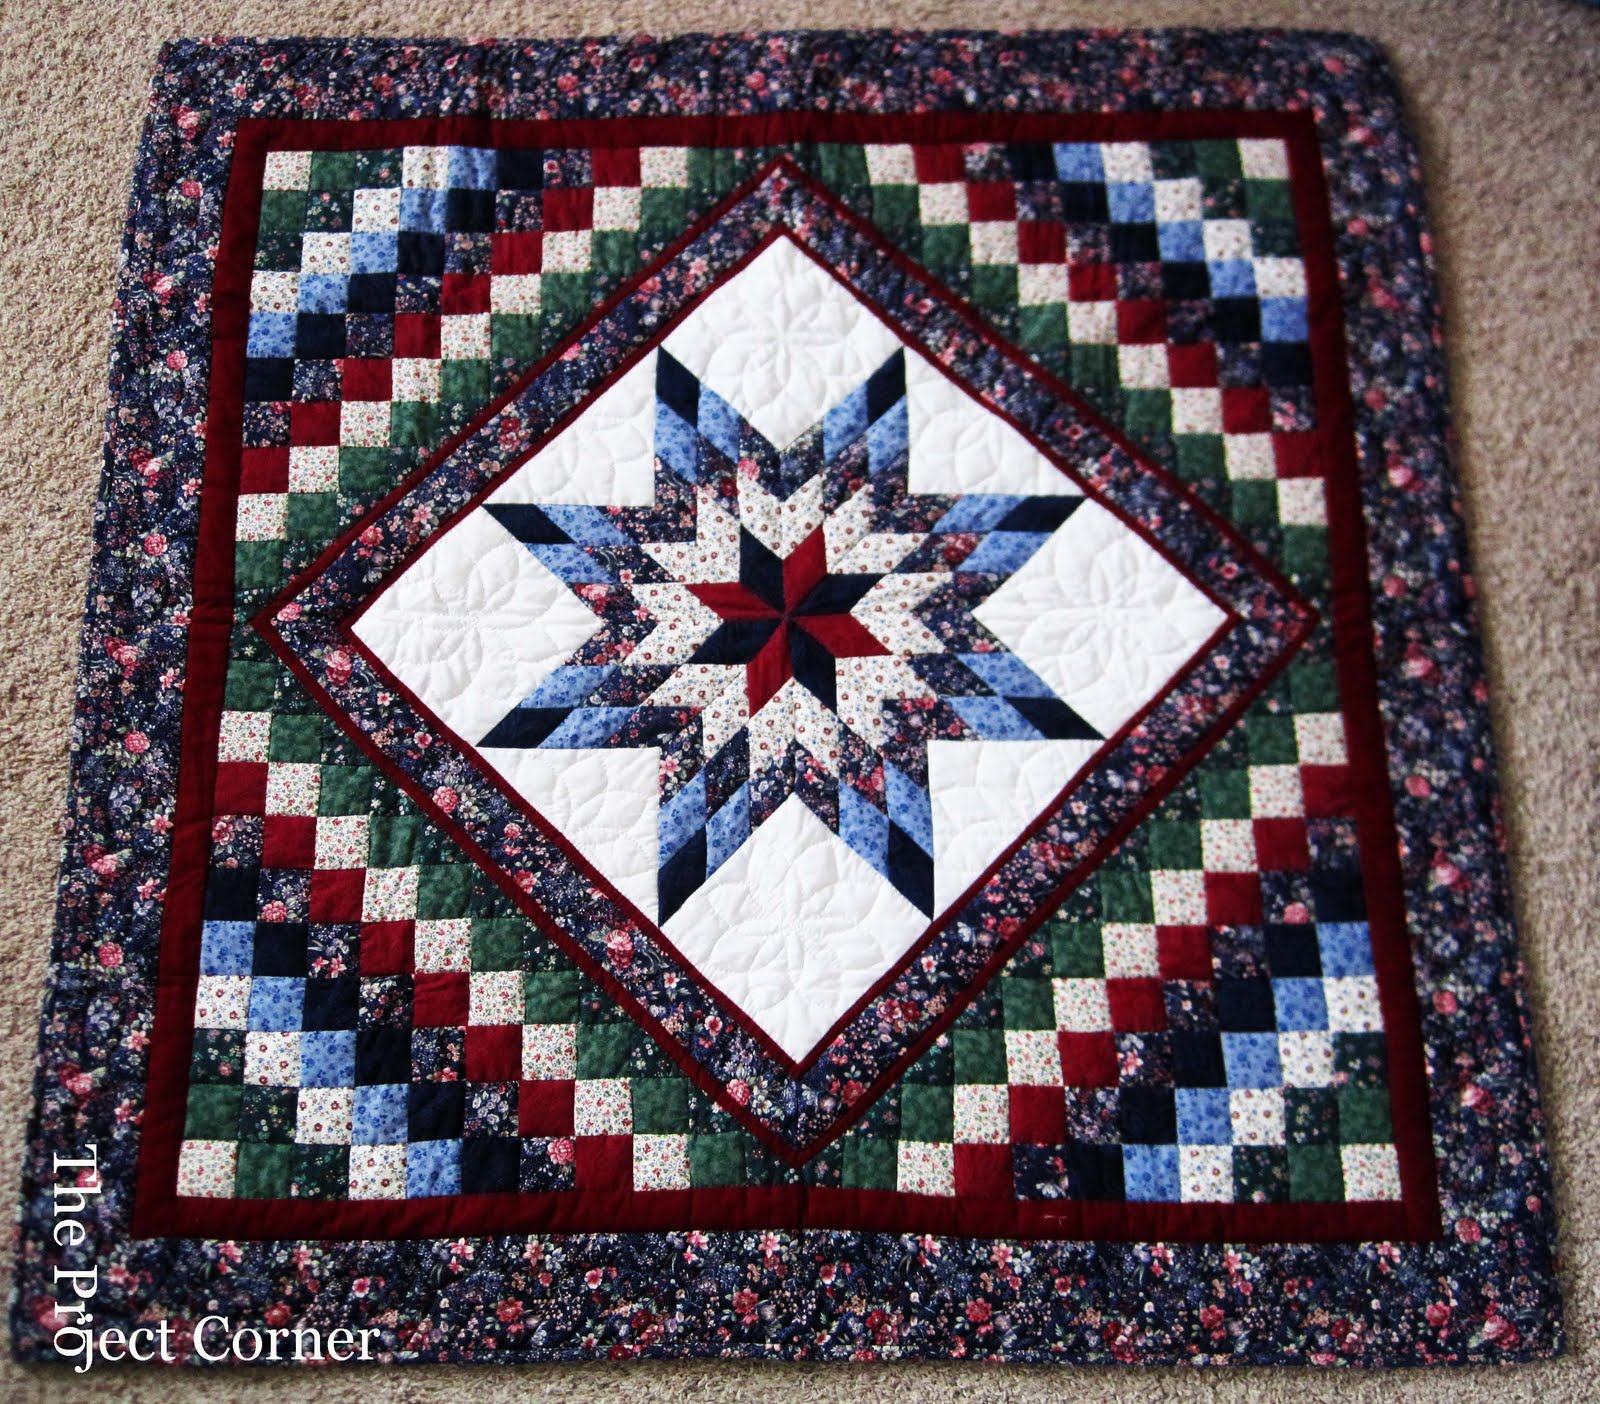 The Project Corner Amish Quilt